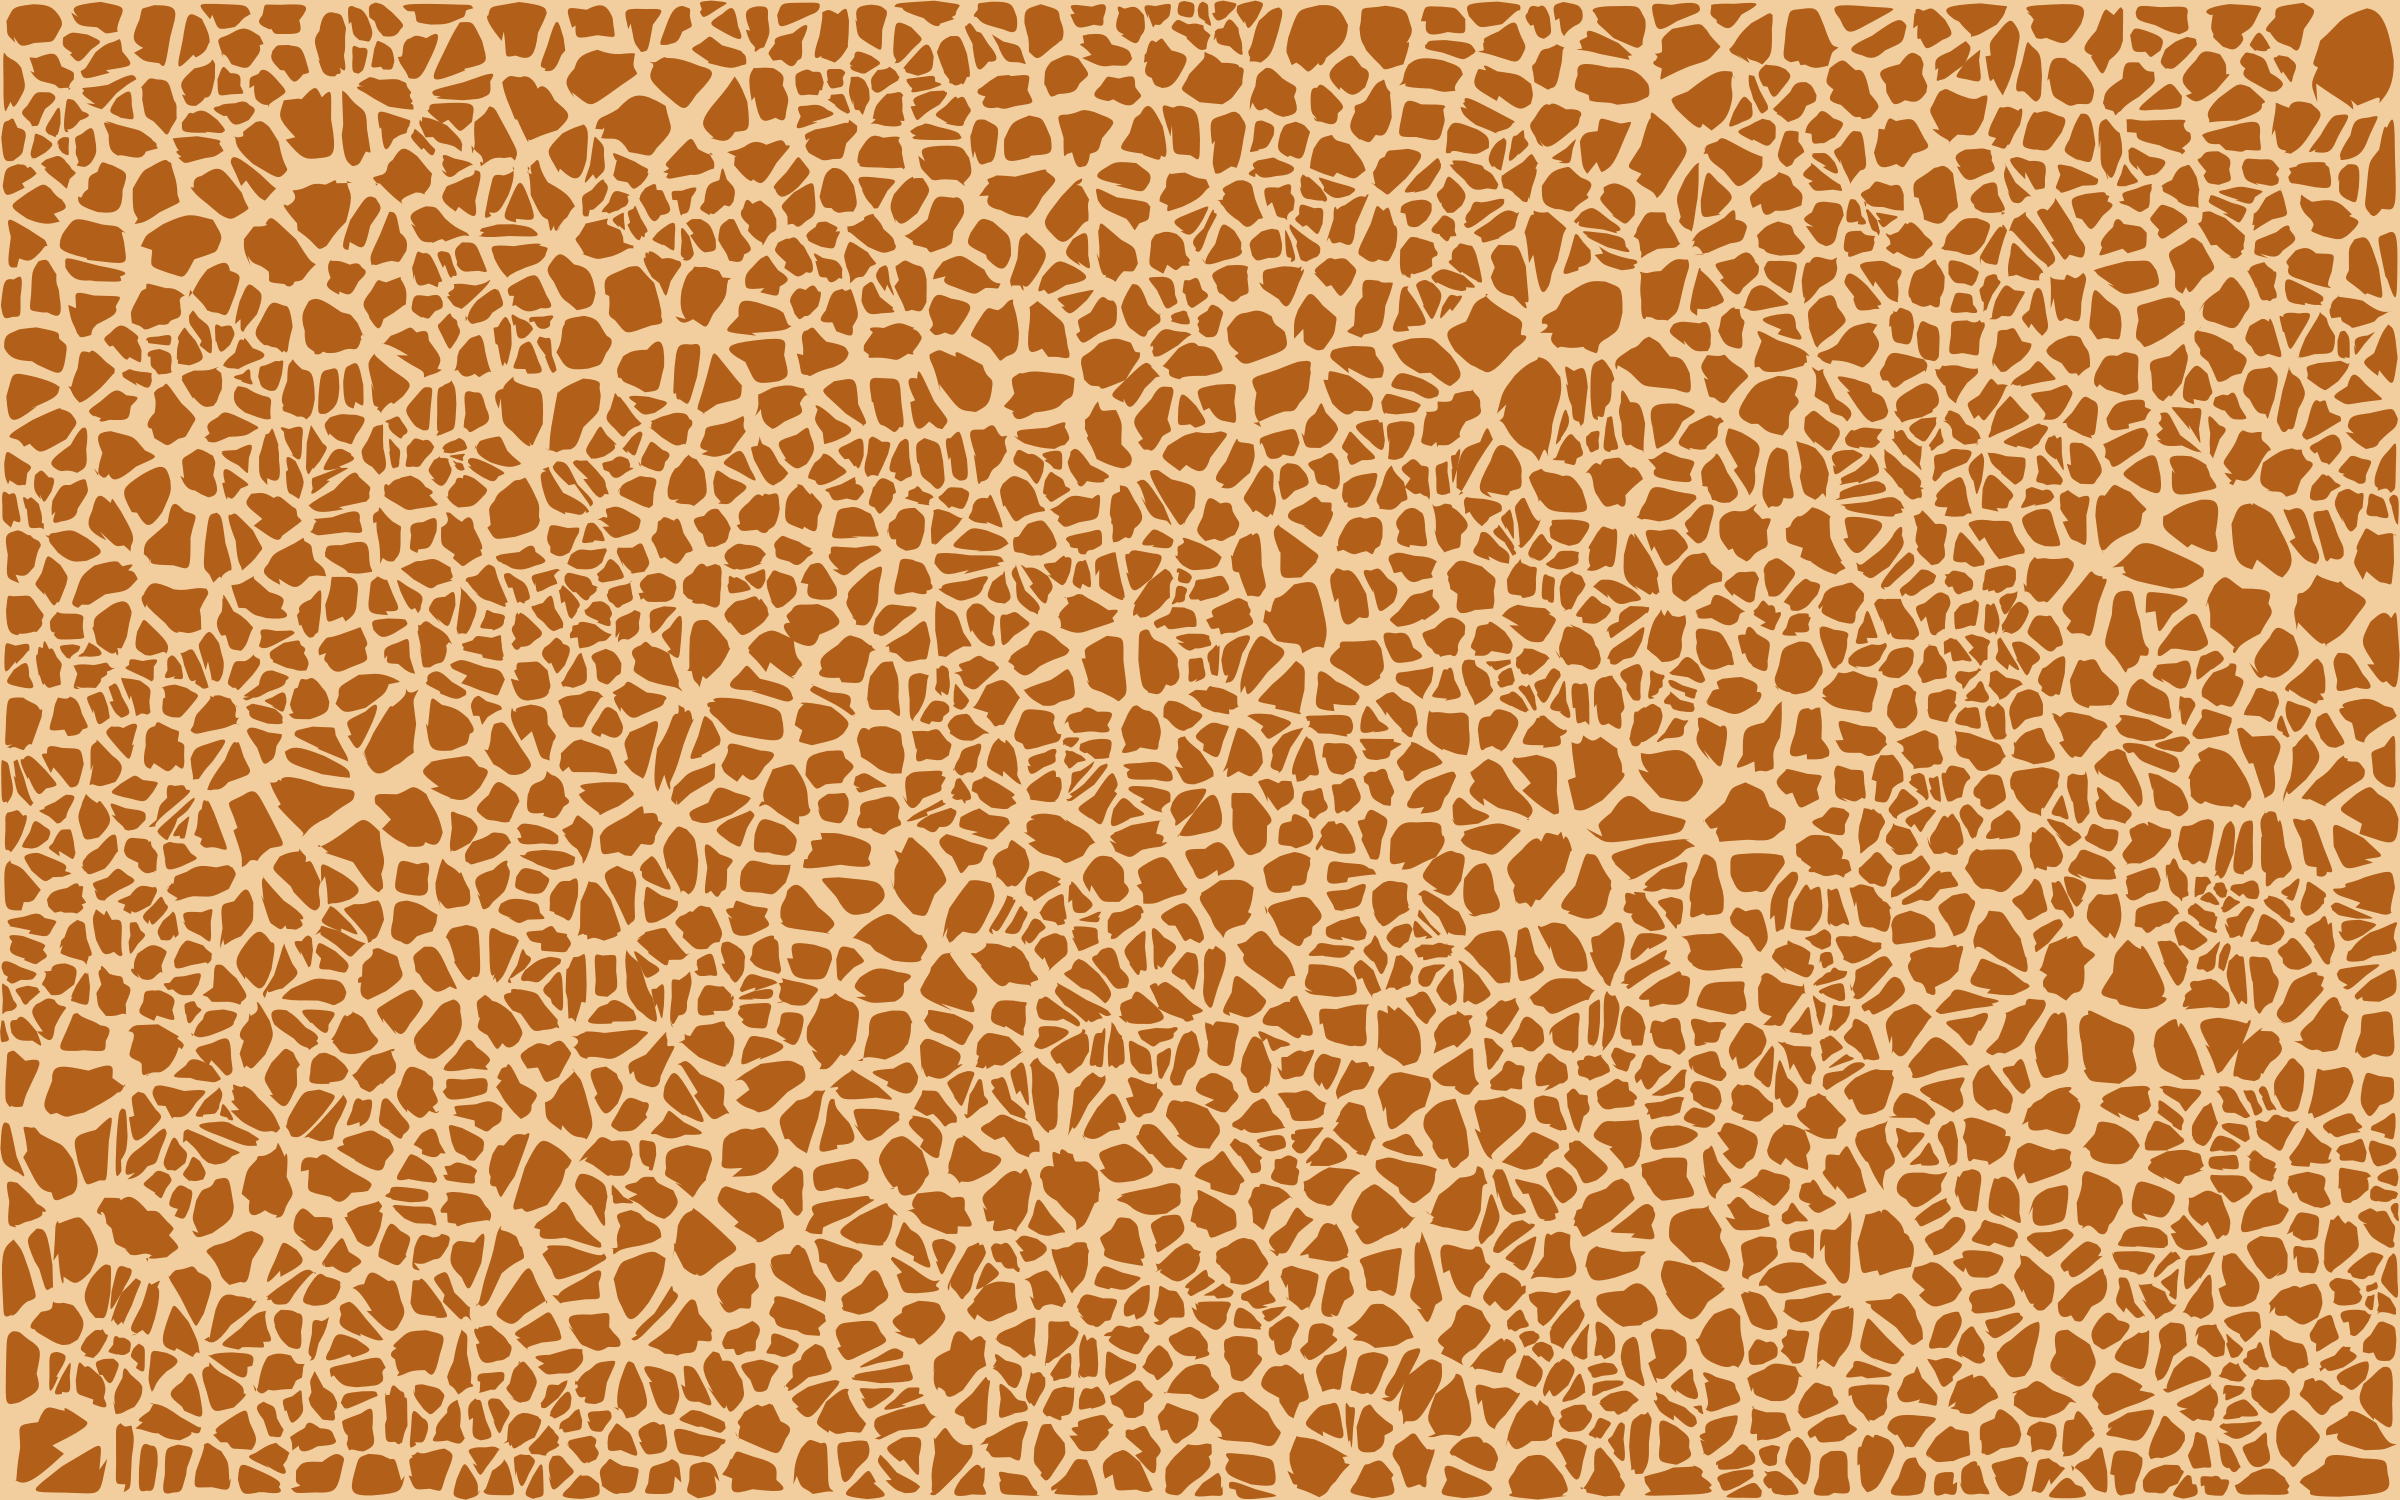 Giraffe Skin Pattern Design by GDJ